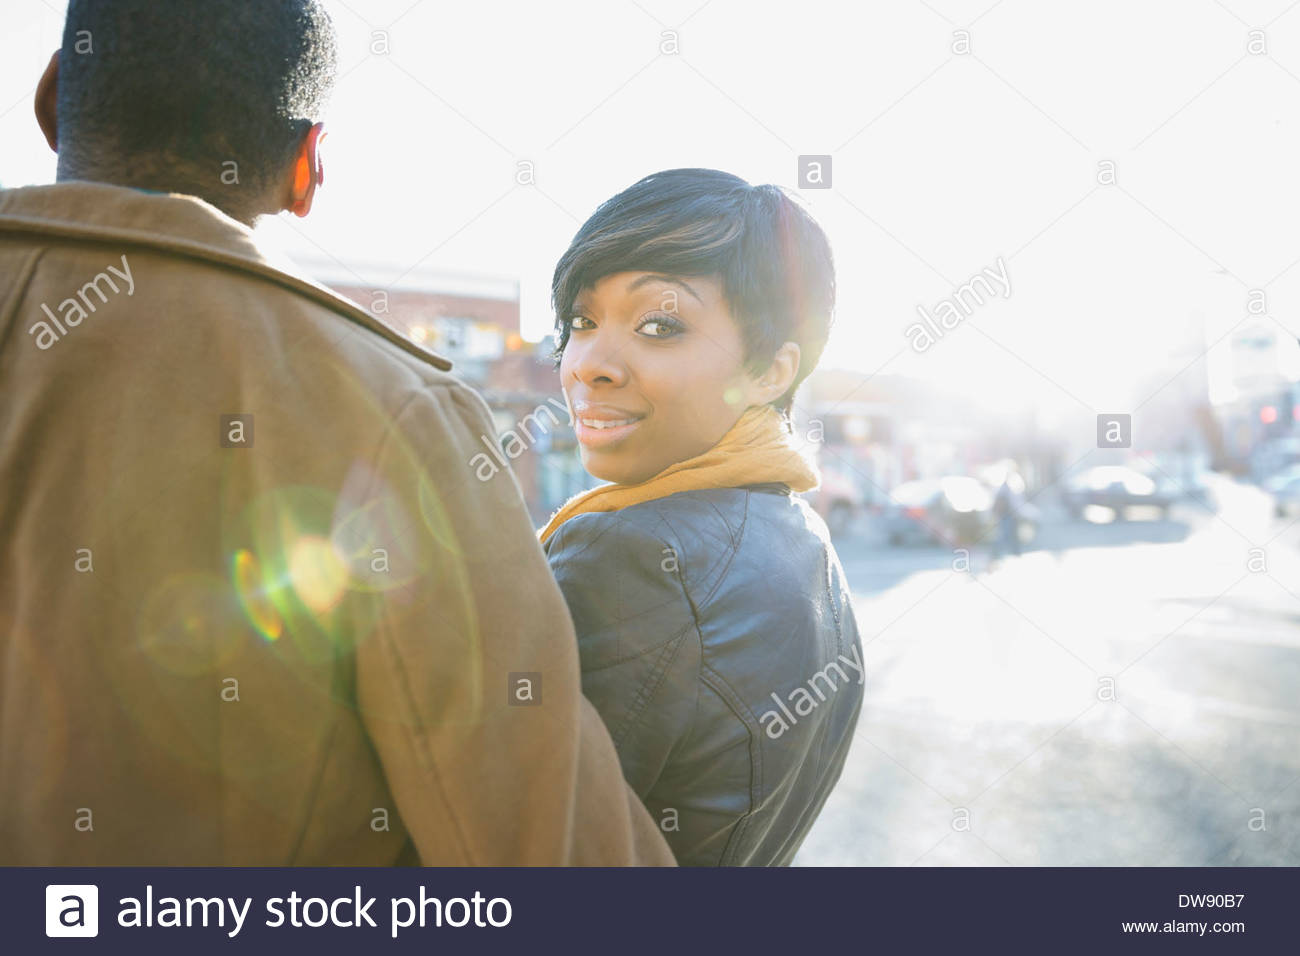 Rear view portrait of woman with man on city street - Stock Image